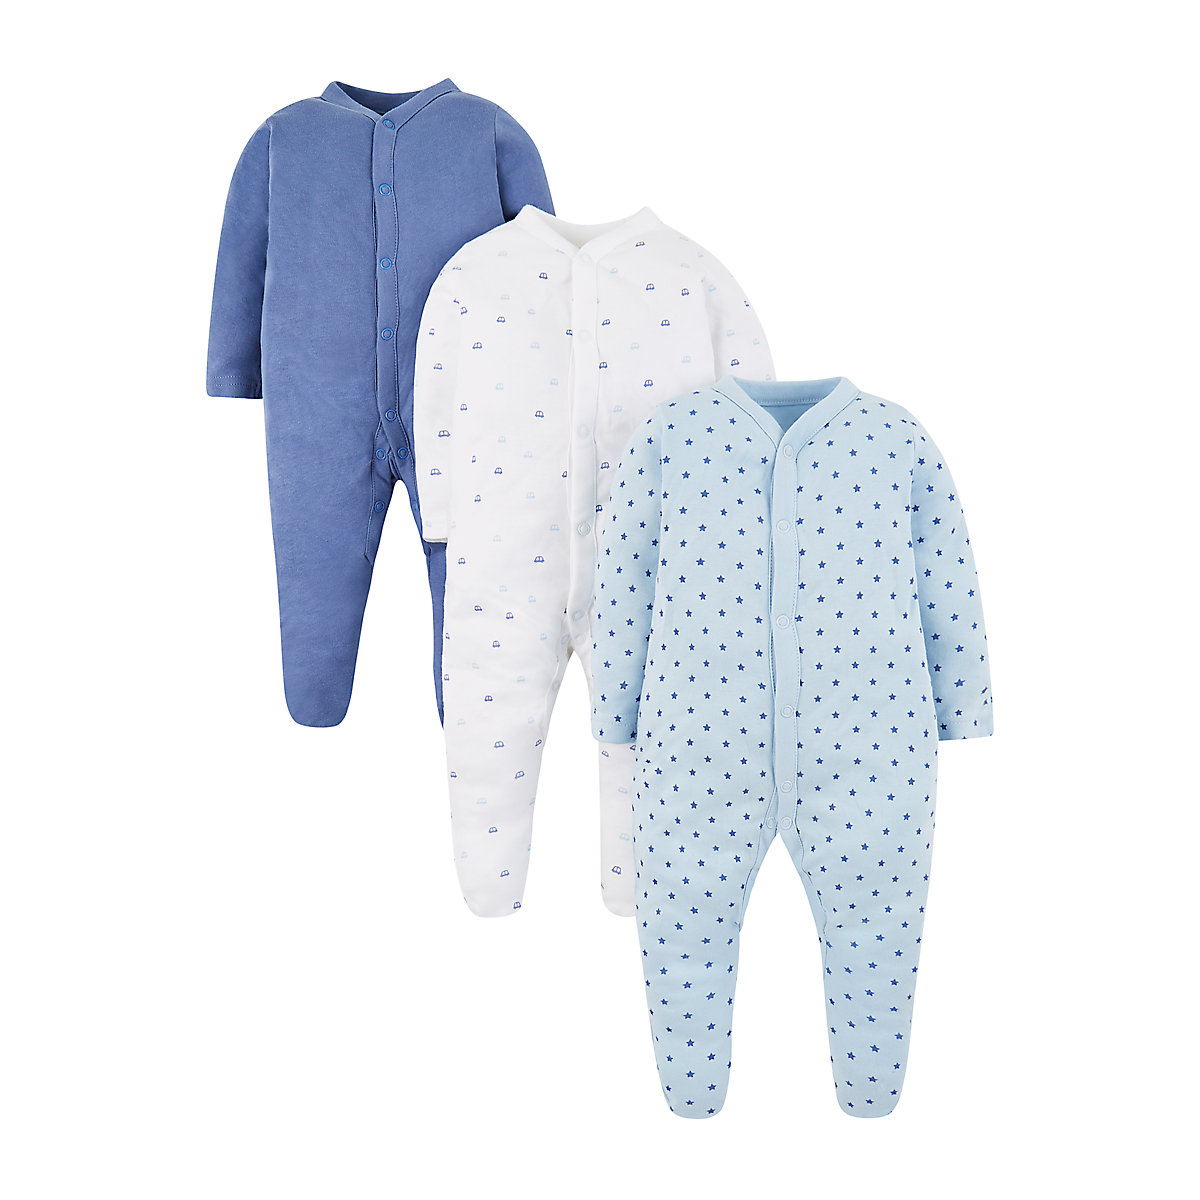 blue sleepsuits - 3 pack